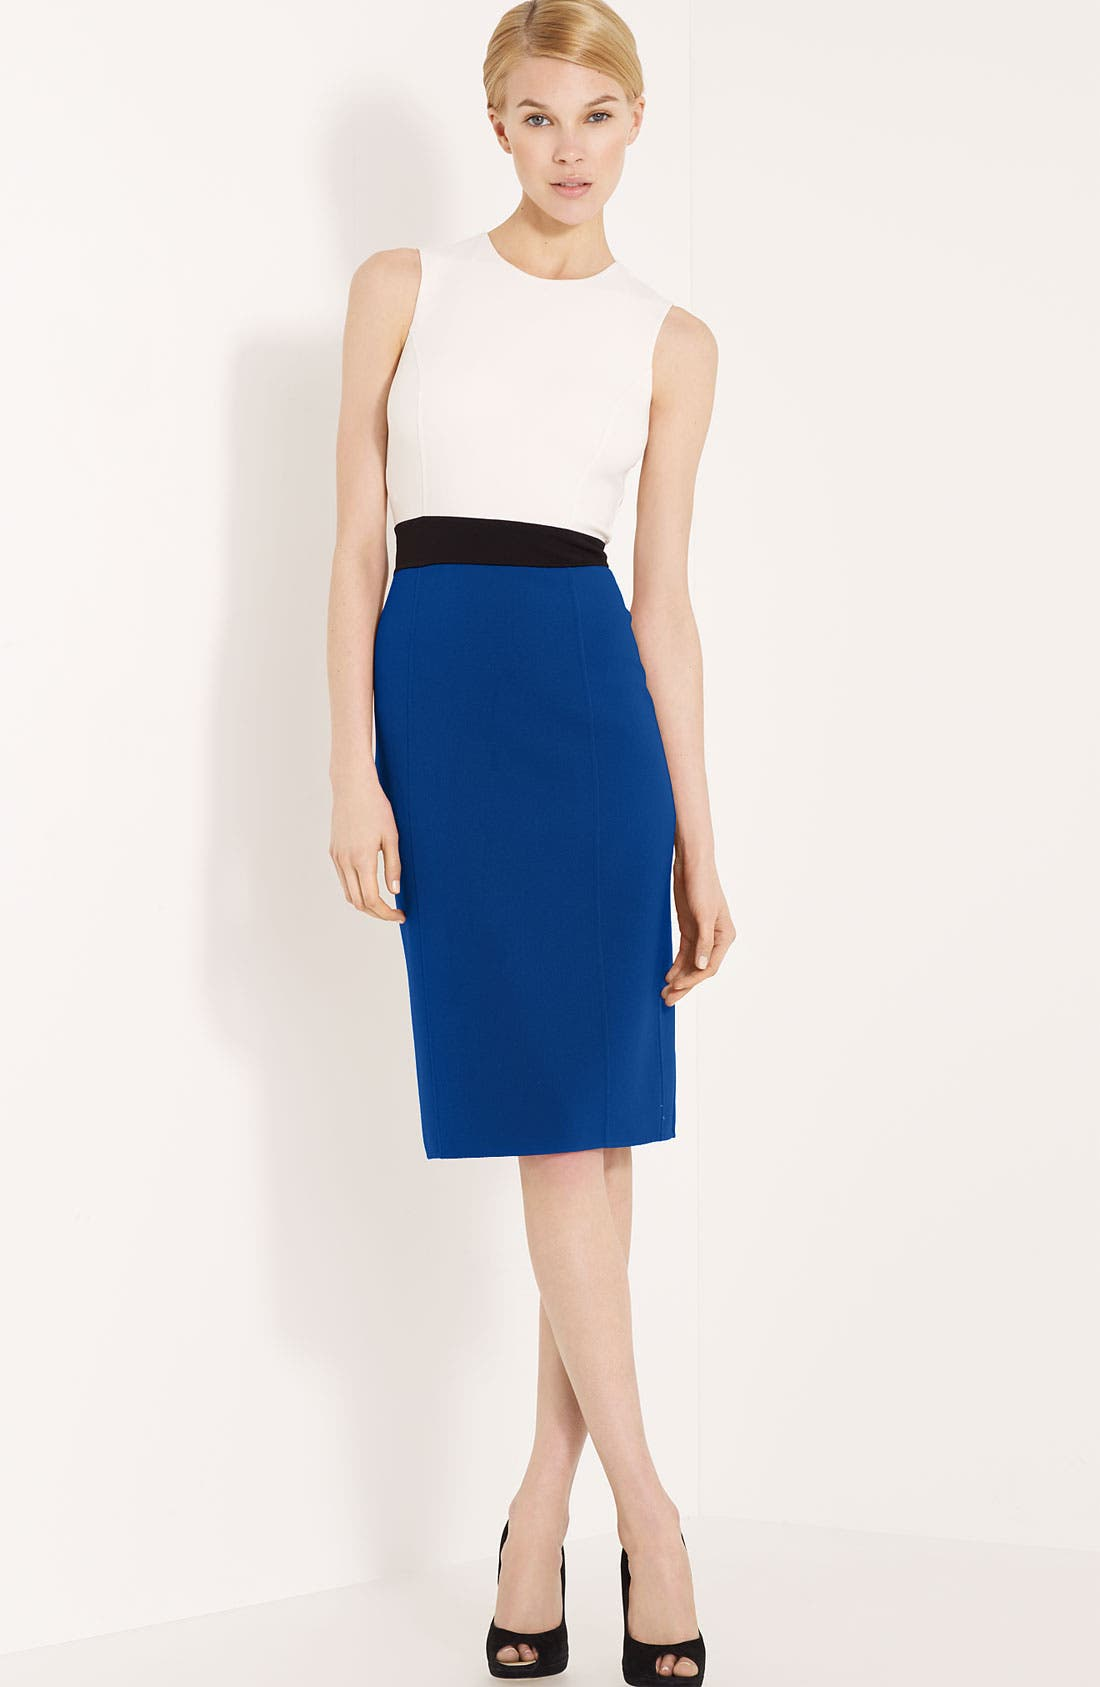 Main Image - Michael Kors Colorblock Stretch Wool Crepe Dress